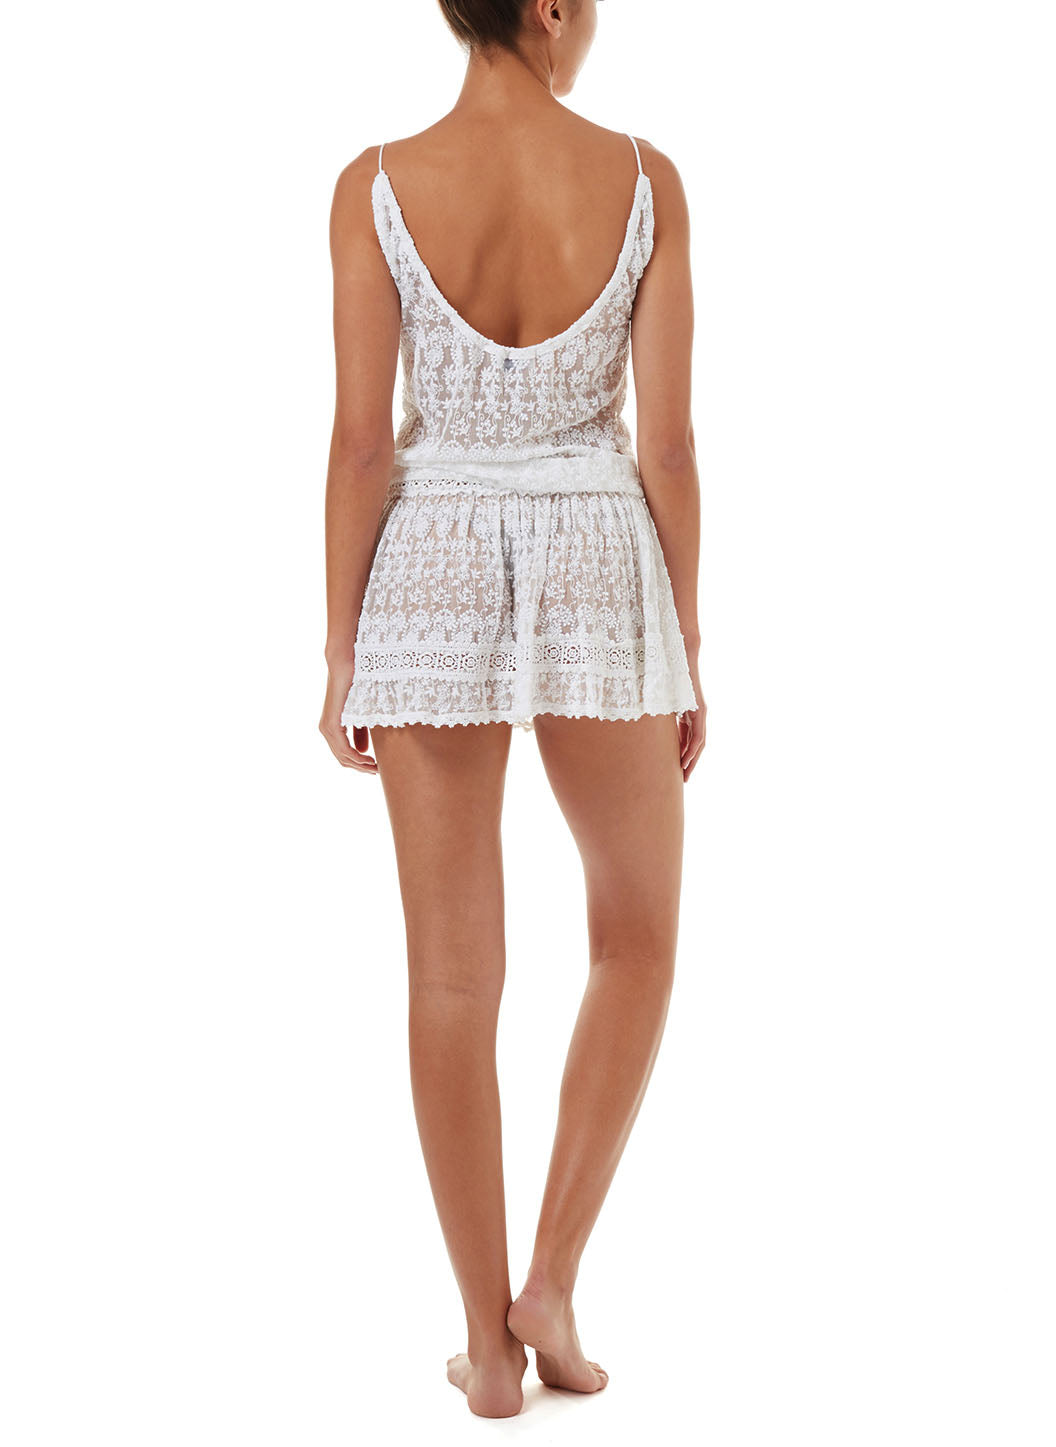 Zoe White Embroidered Short Over The Shoulder Beach Dress